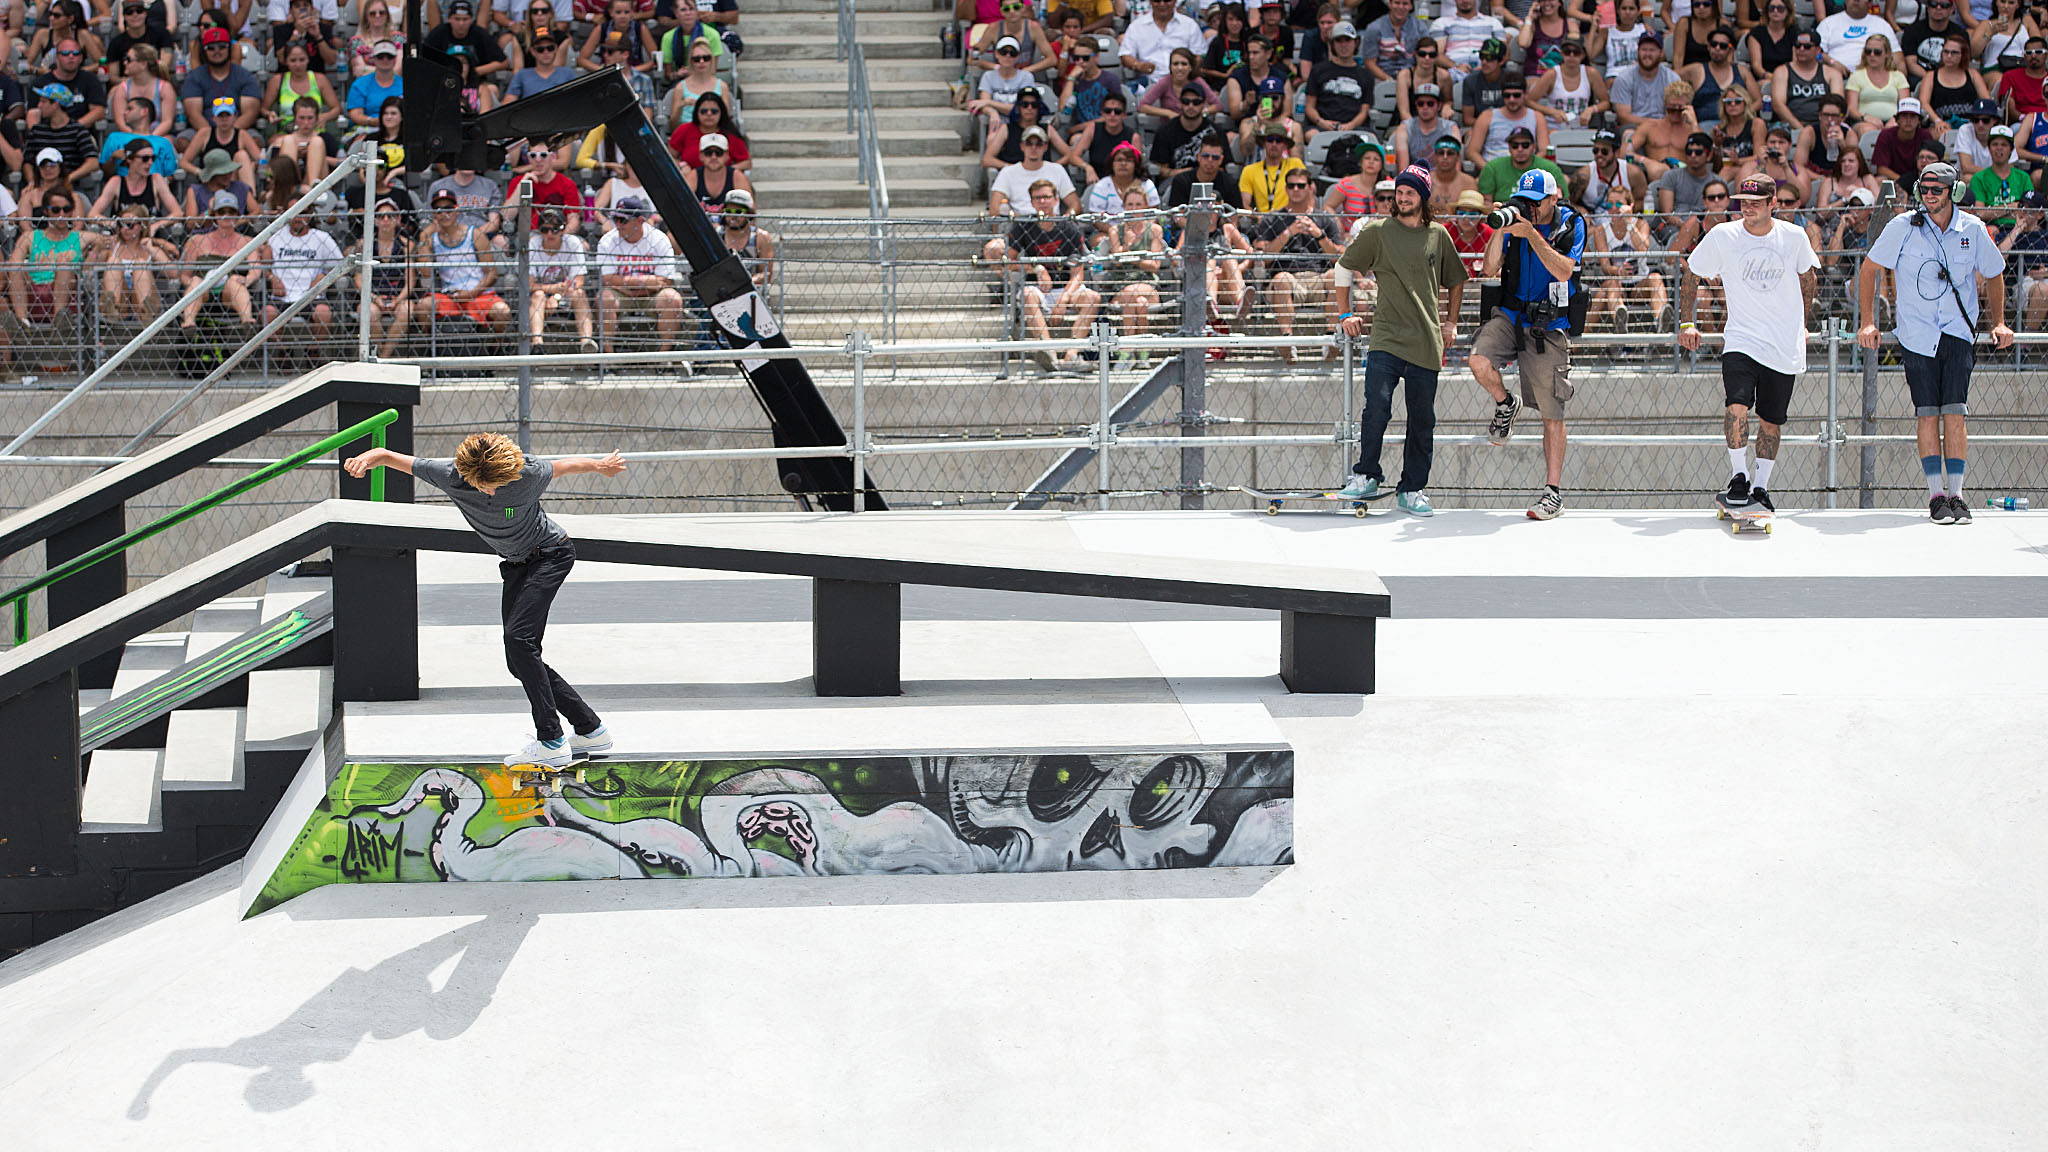 Curren Caples is normally known as a Skateboard Park specialist -- he won gold in that discipline at X Games Munich in 2013 -- but he squeaked his way into the Skateboard Street Round 1 on Sunday in Austin. The 18-year-old, who's the son of former surf pro Evan Caples, was edged out of the final by Sheckler on his last run in Round 1 and ended up in seventh place.